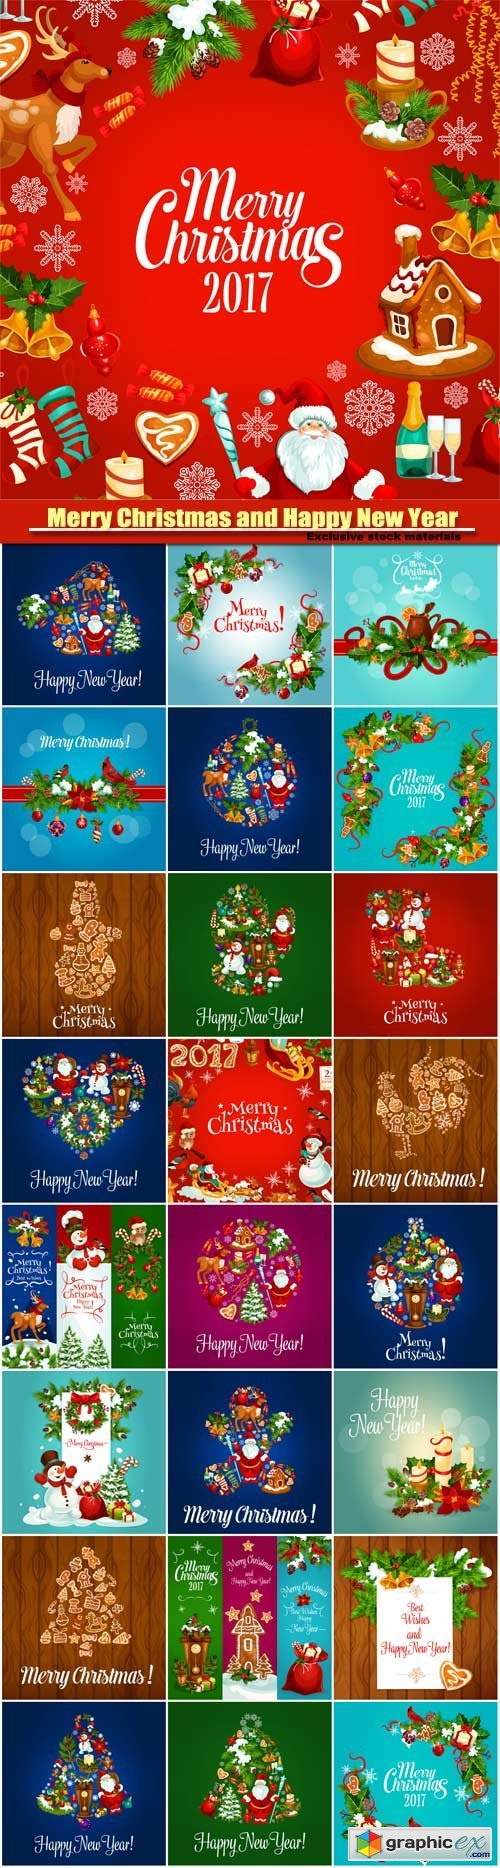 Merry Christmas And Happy New Year Vector Background Symbols Of New